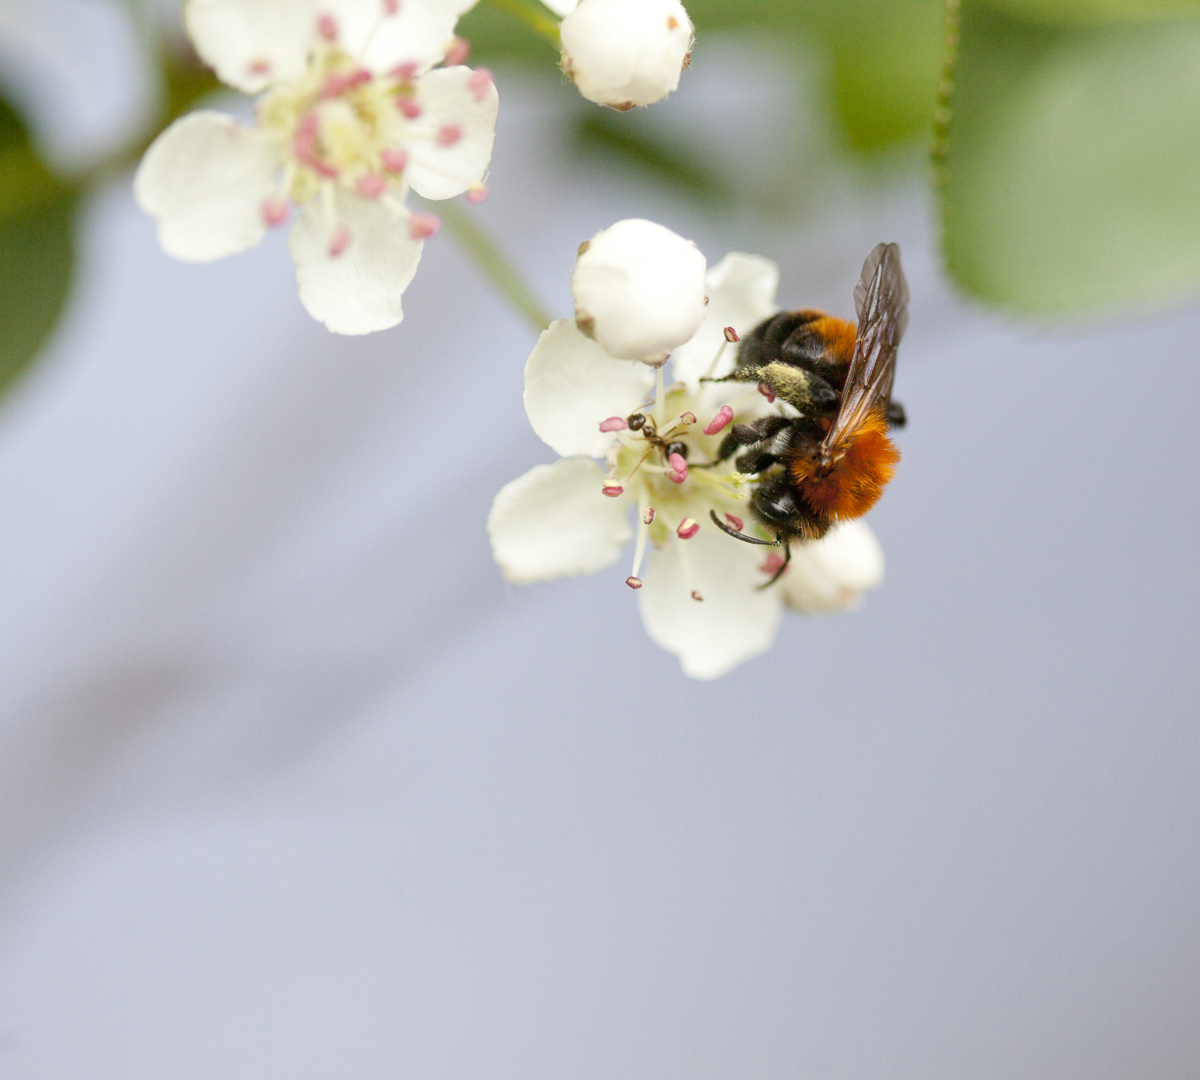 Tawny mining bee, plum blossom by Laurie Schneider